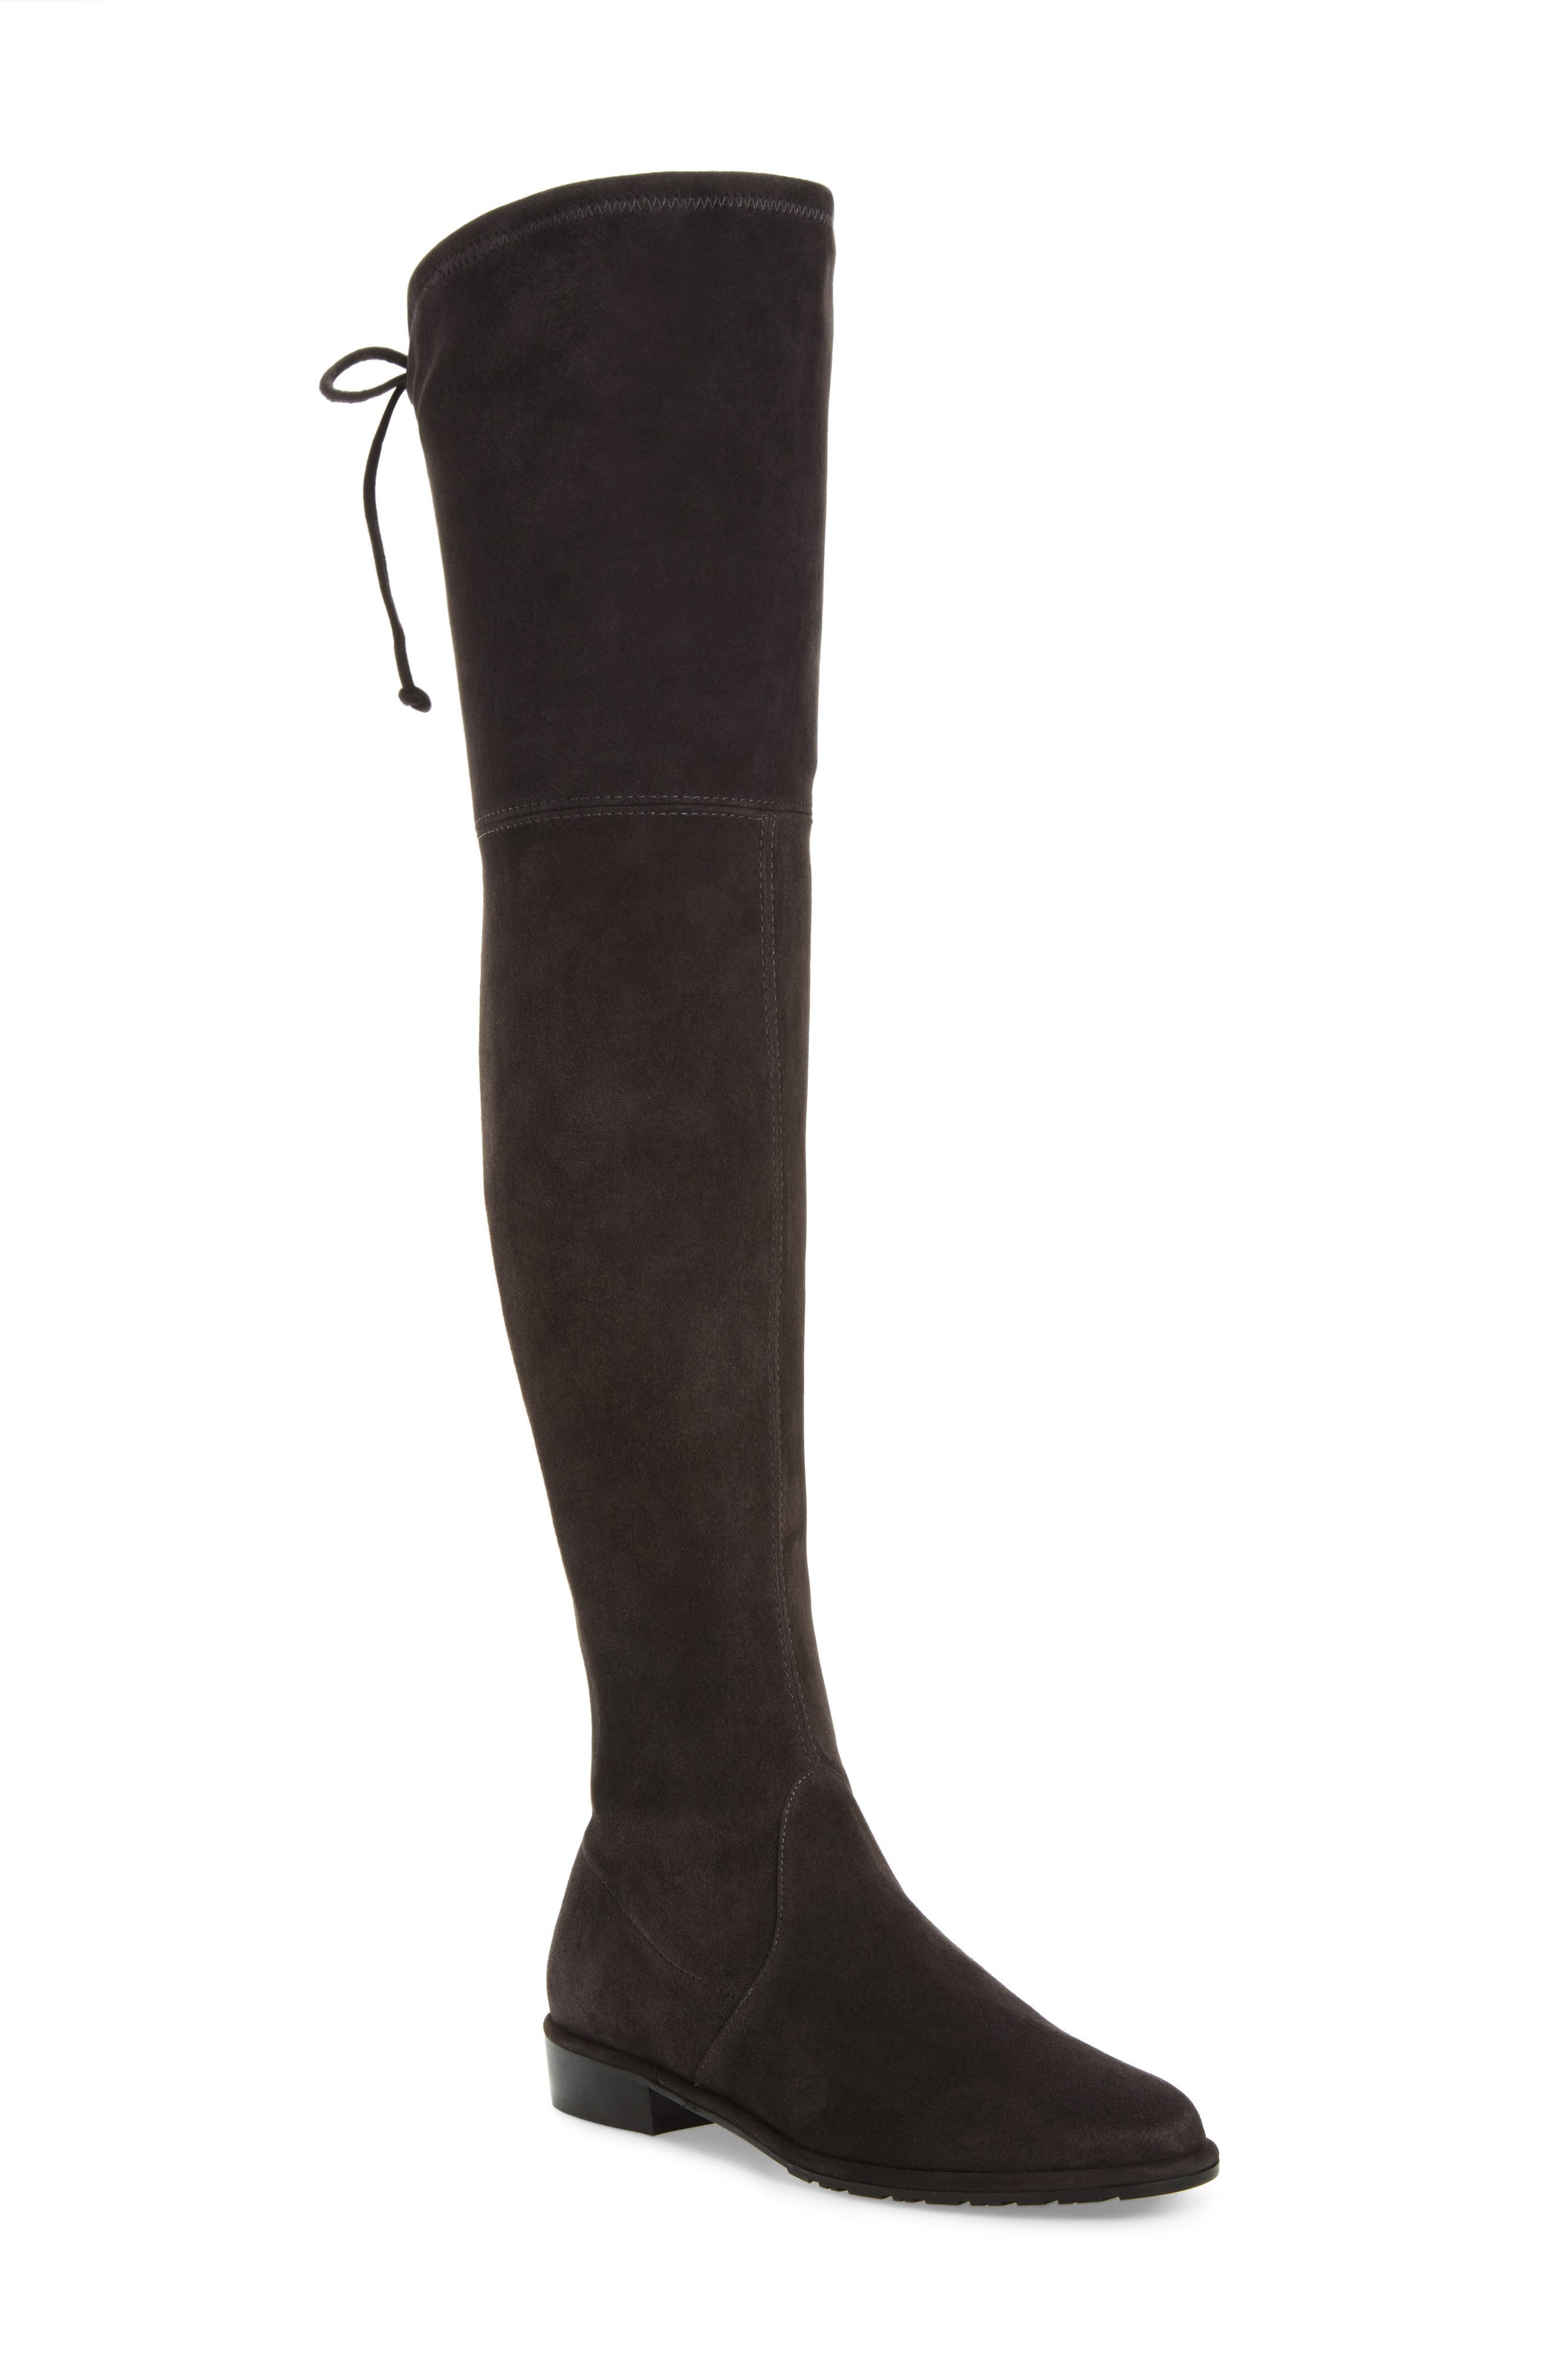 'Lowland' Over the Knee Boot,                             Main thumbnail 1, color,                             ASPHALT SUEDE